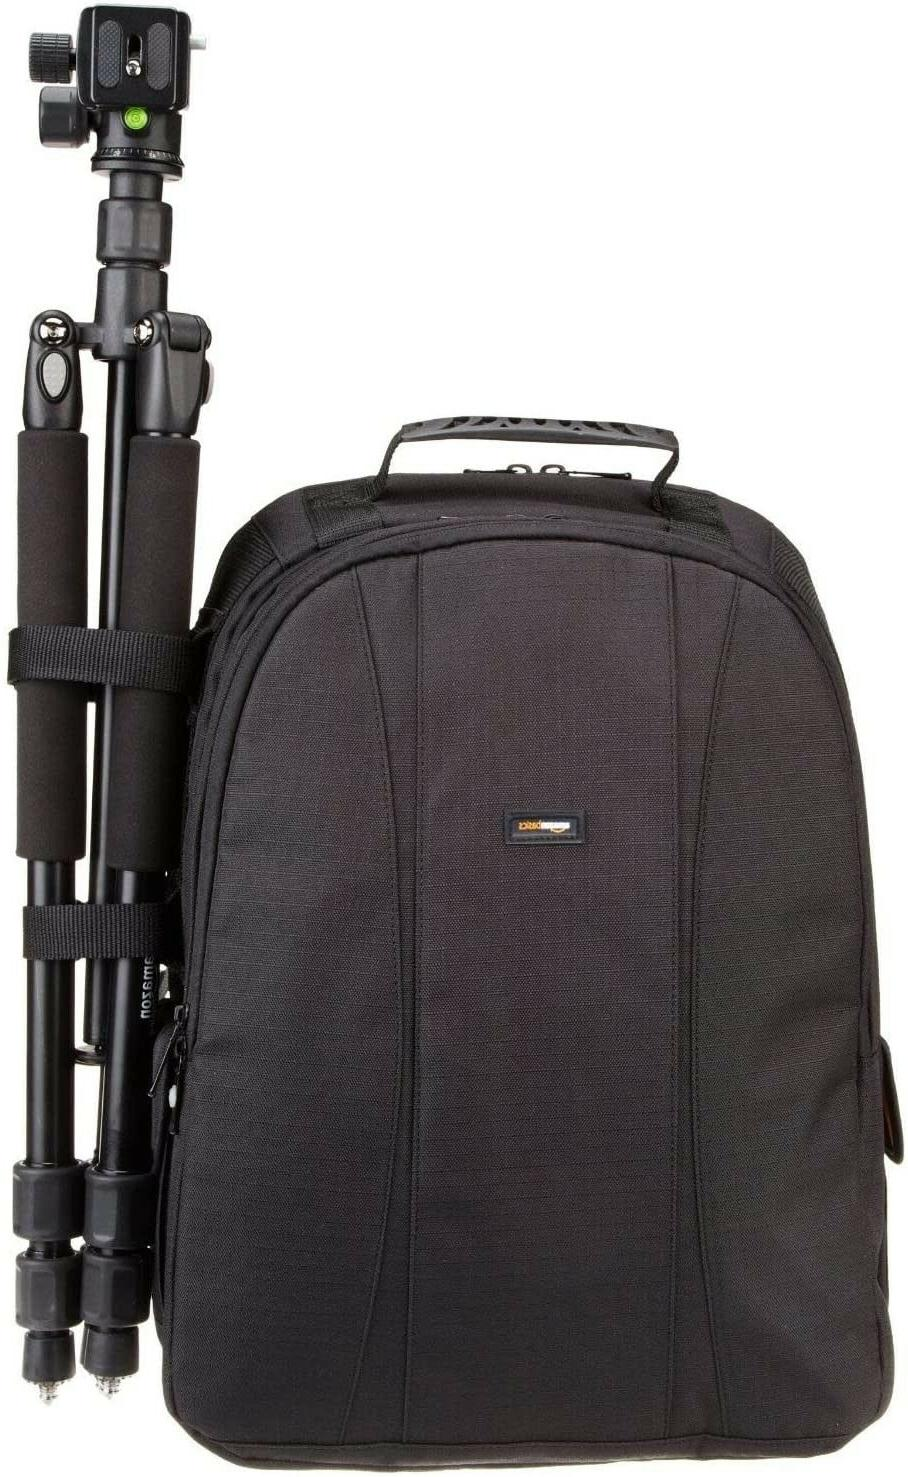 AmazonBasics Backpack Travel Storage Case